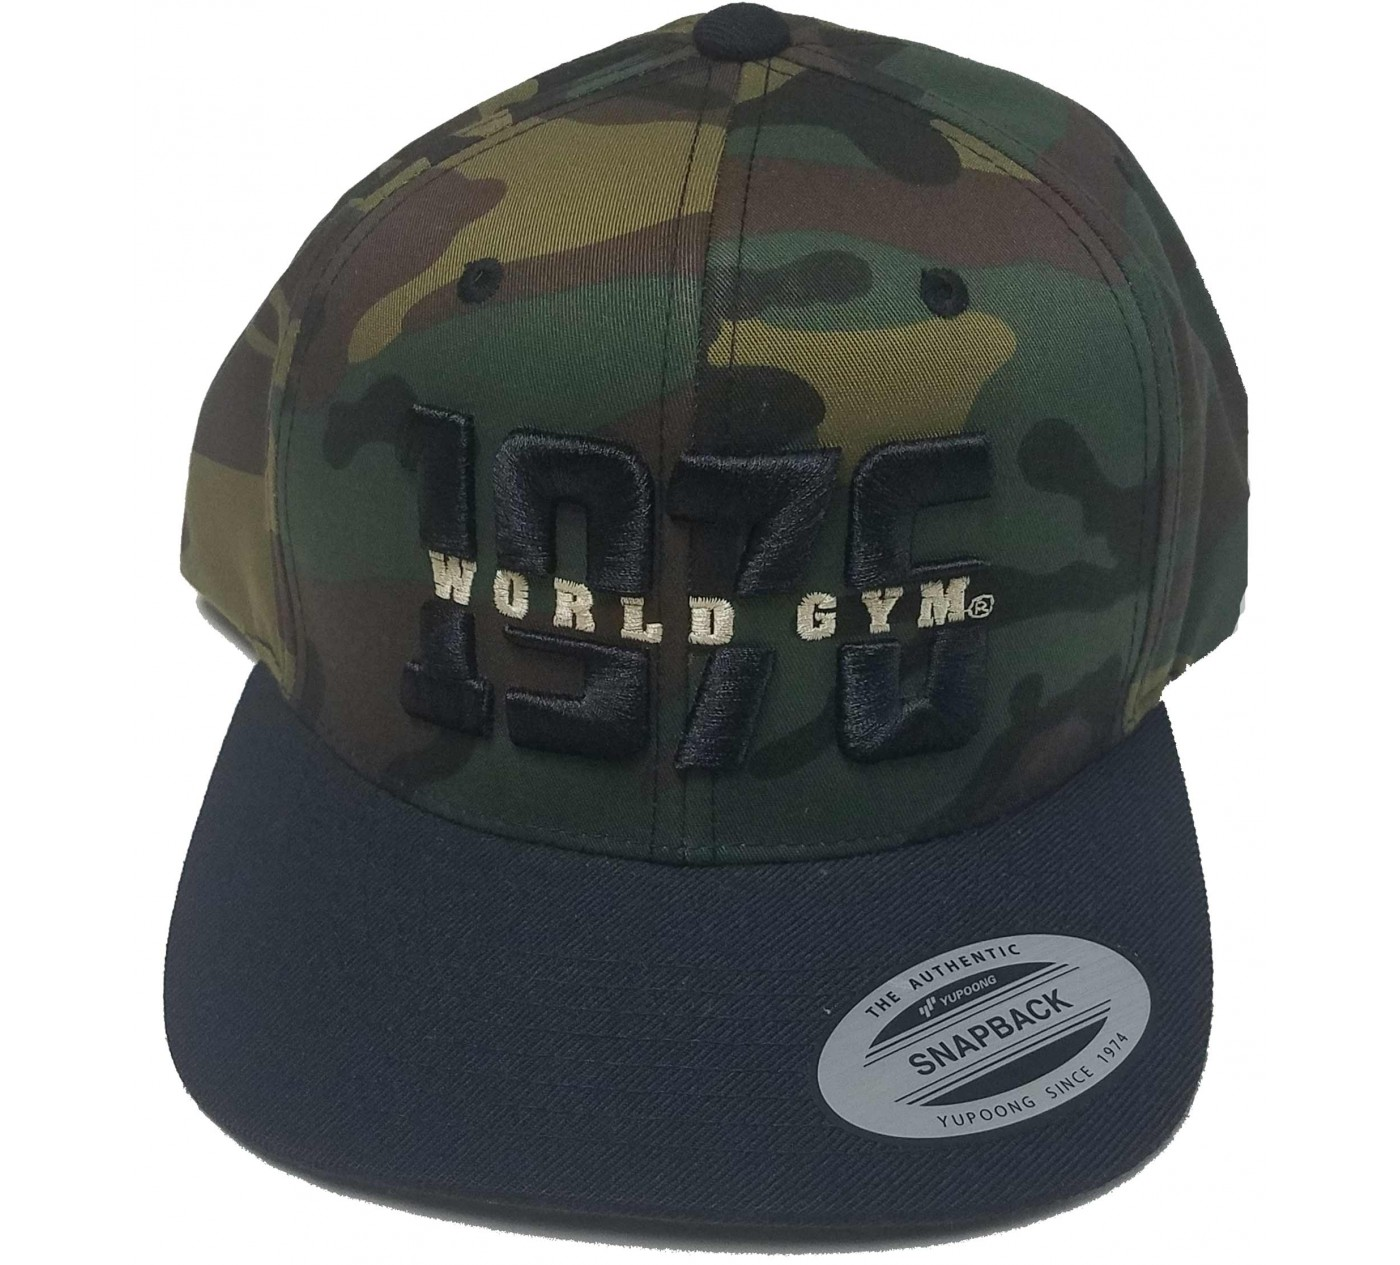 World Gym Logo Baseball hat CAMO